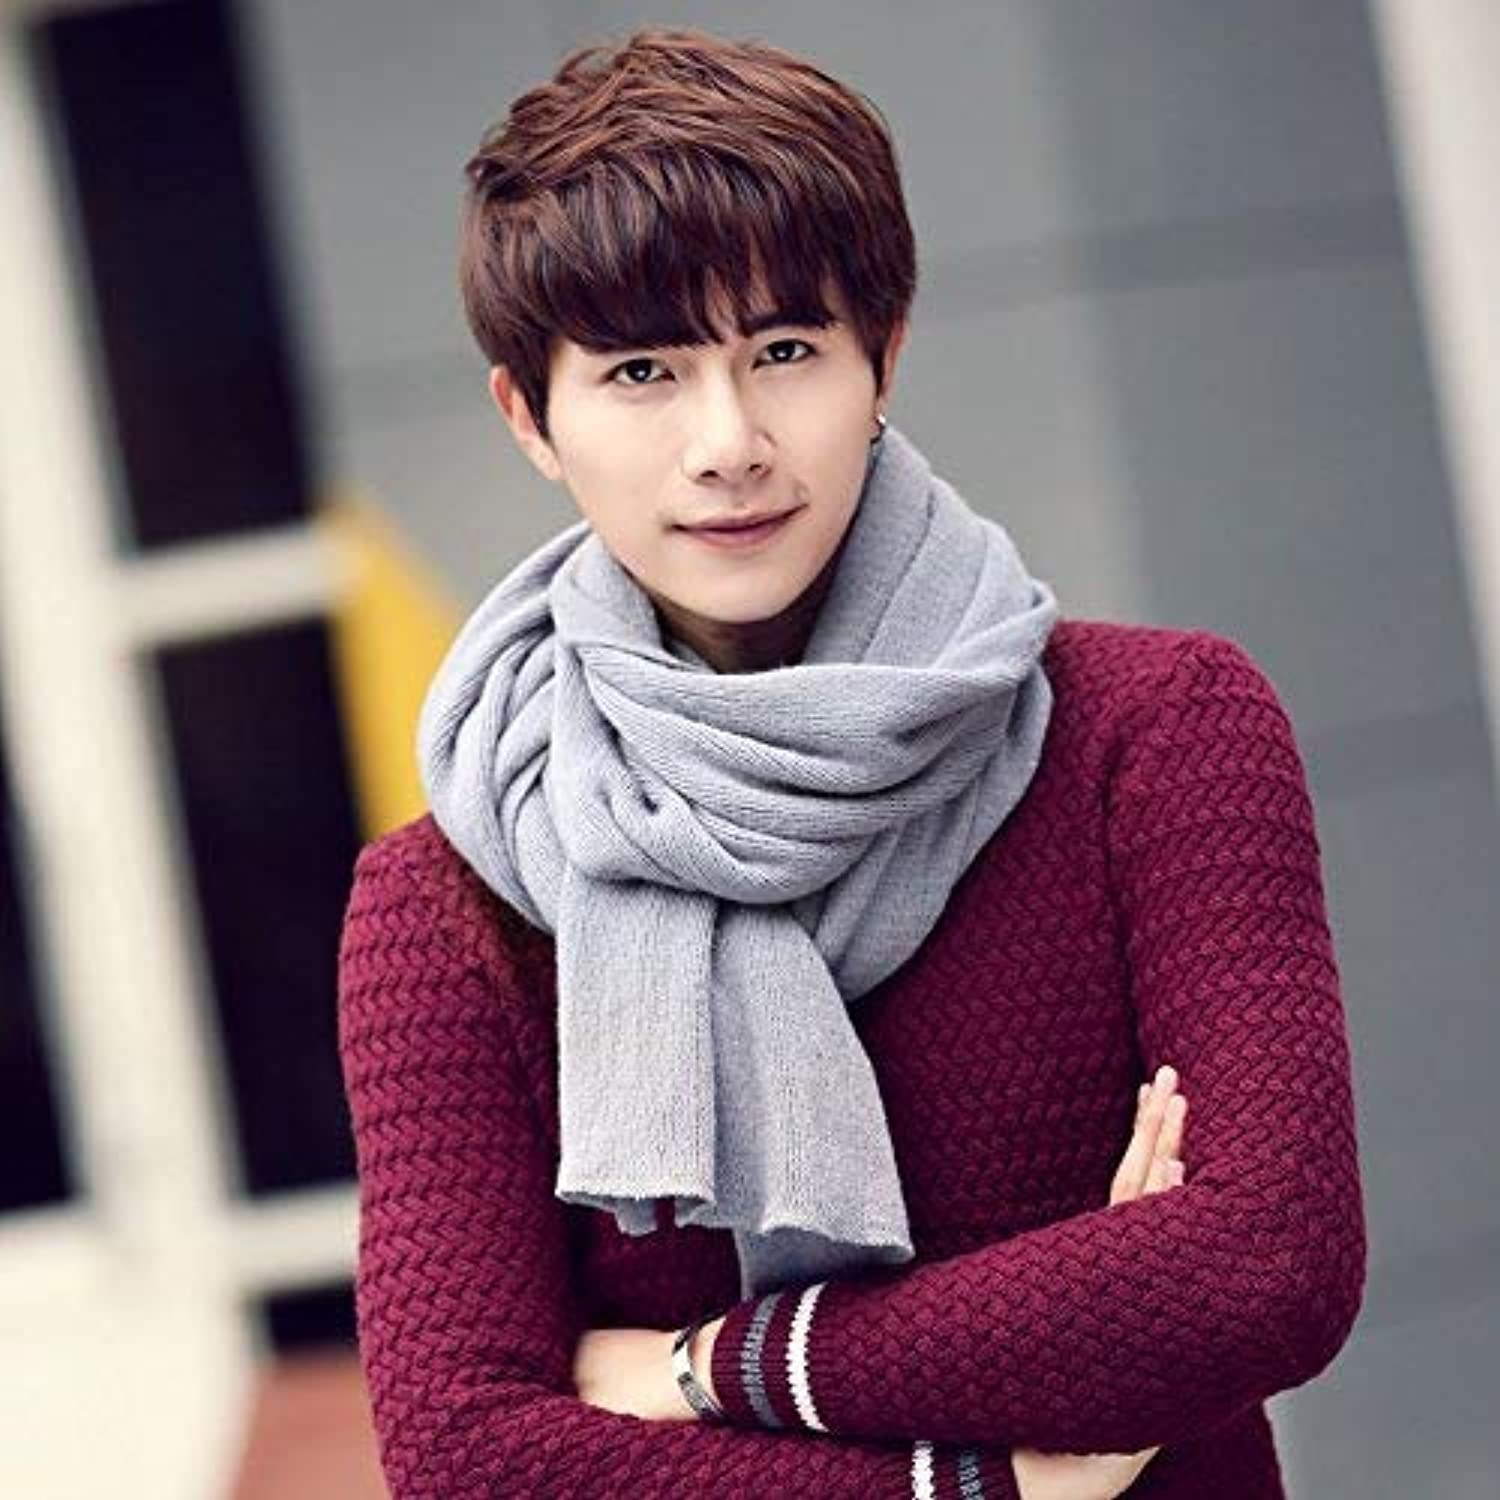 JINGB Home ScarfMen's Scarf Autumn Winter Students Solid color Knitted Thickening Warm Shawl Imitation Cashmere Scarf Female Autumn and Winter Korean Students Knitted Shawl Long (color   Six)